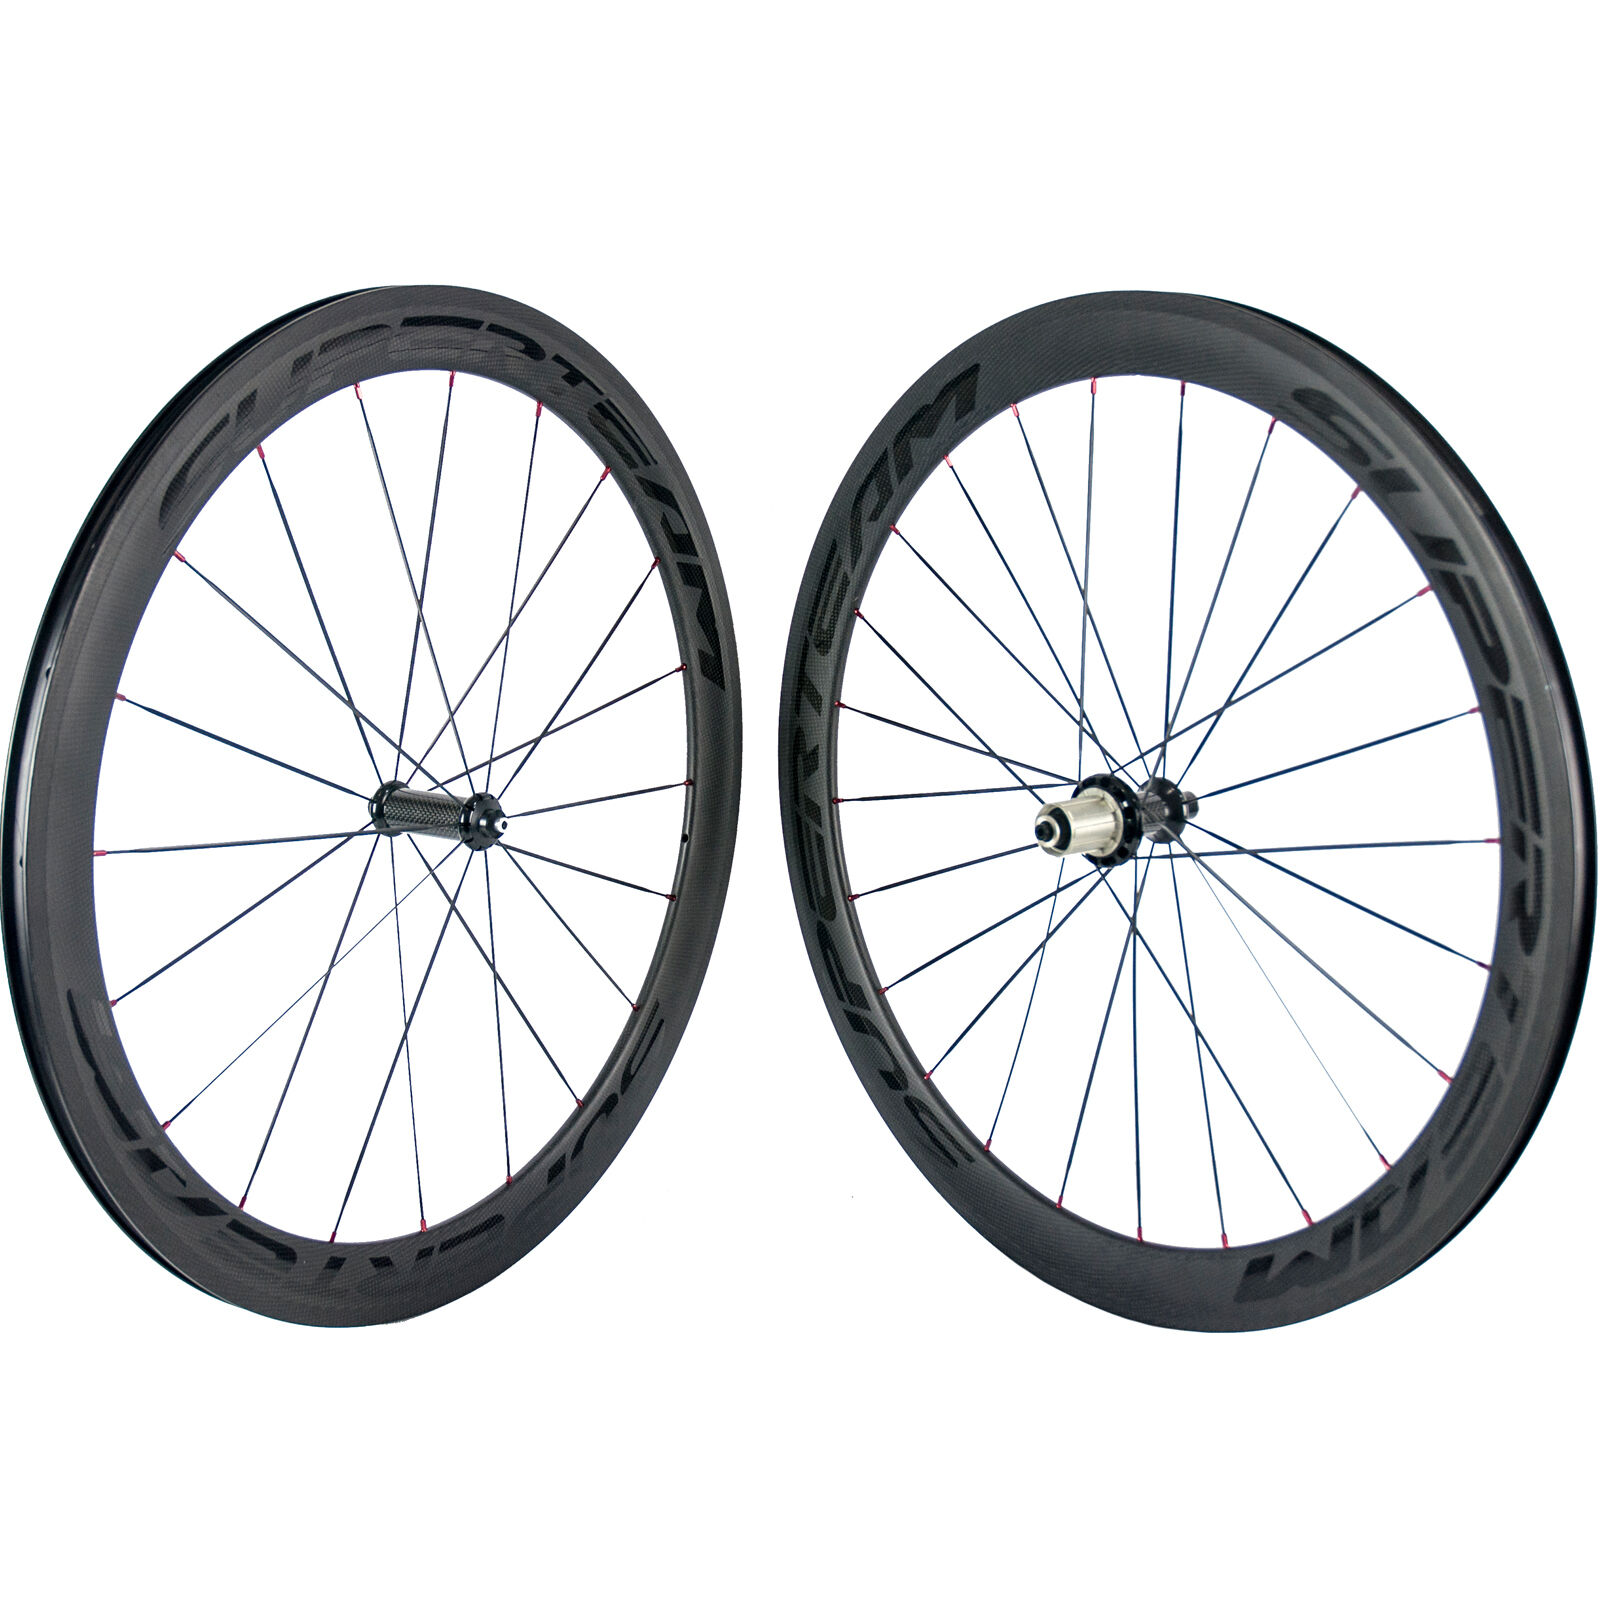 SUPERTEAM Carbon Road Wheelset  Clincher 50mm Bicycle Carbon Wheel R36 Red Nipple  save up to 70% discount